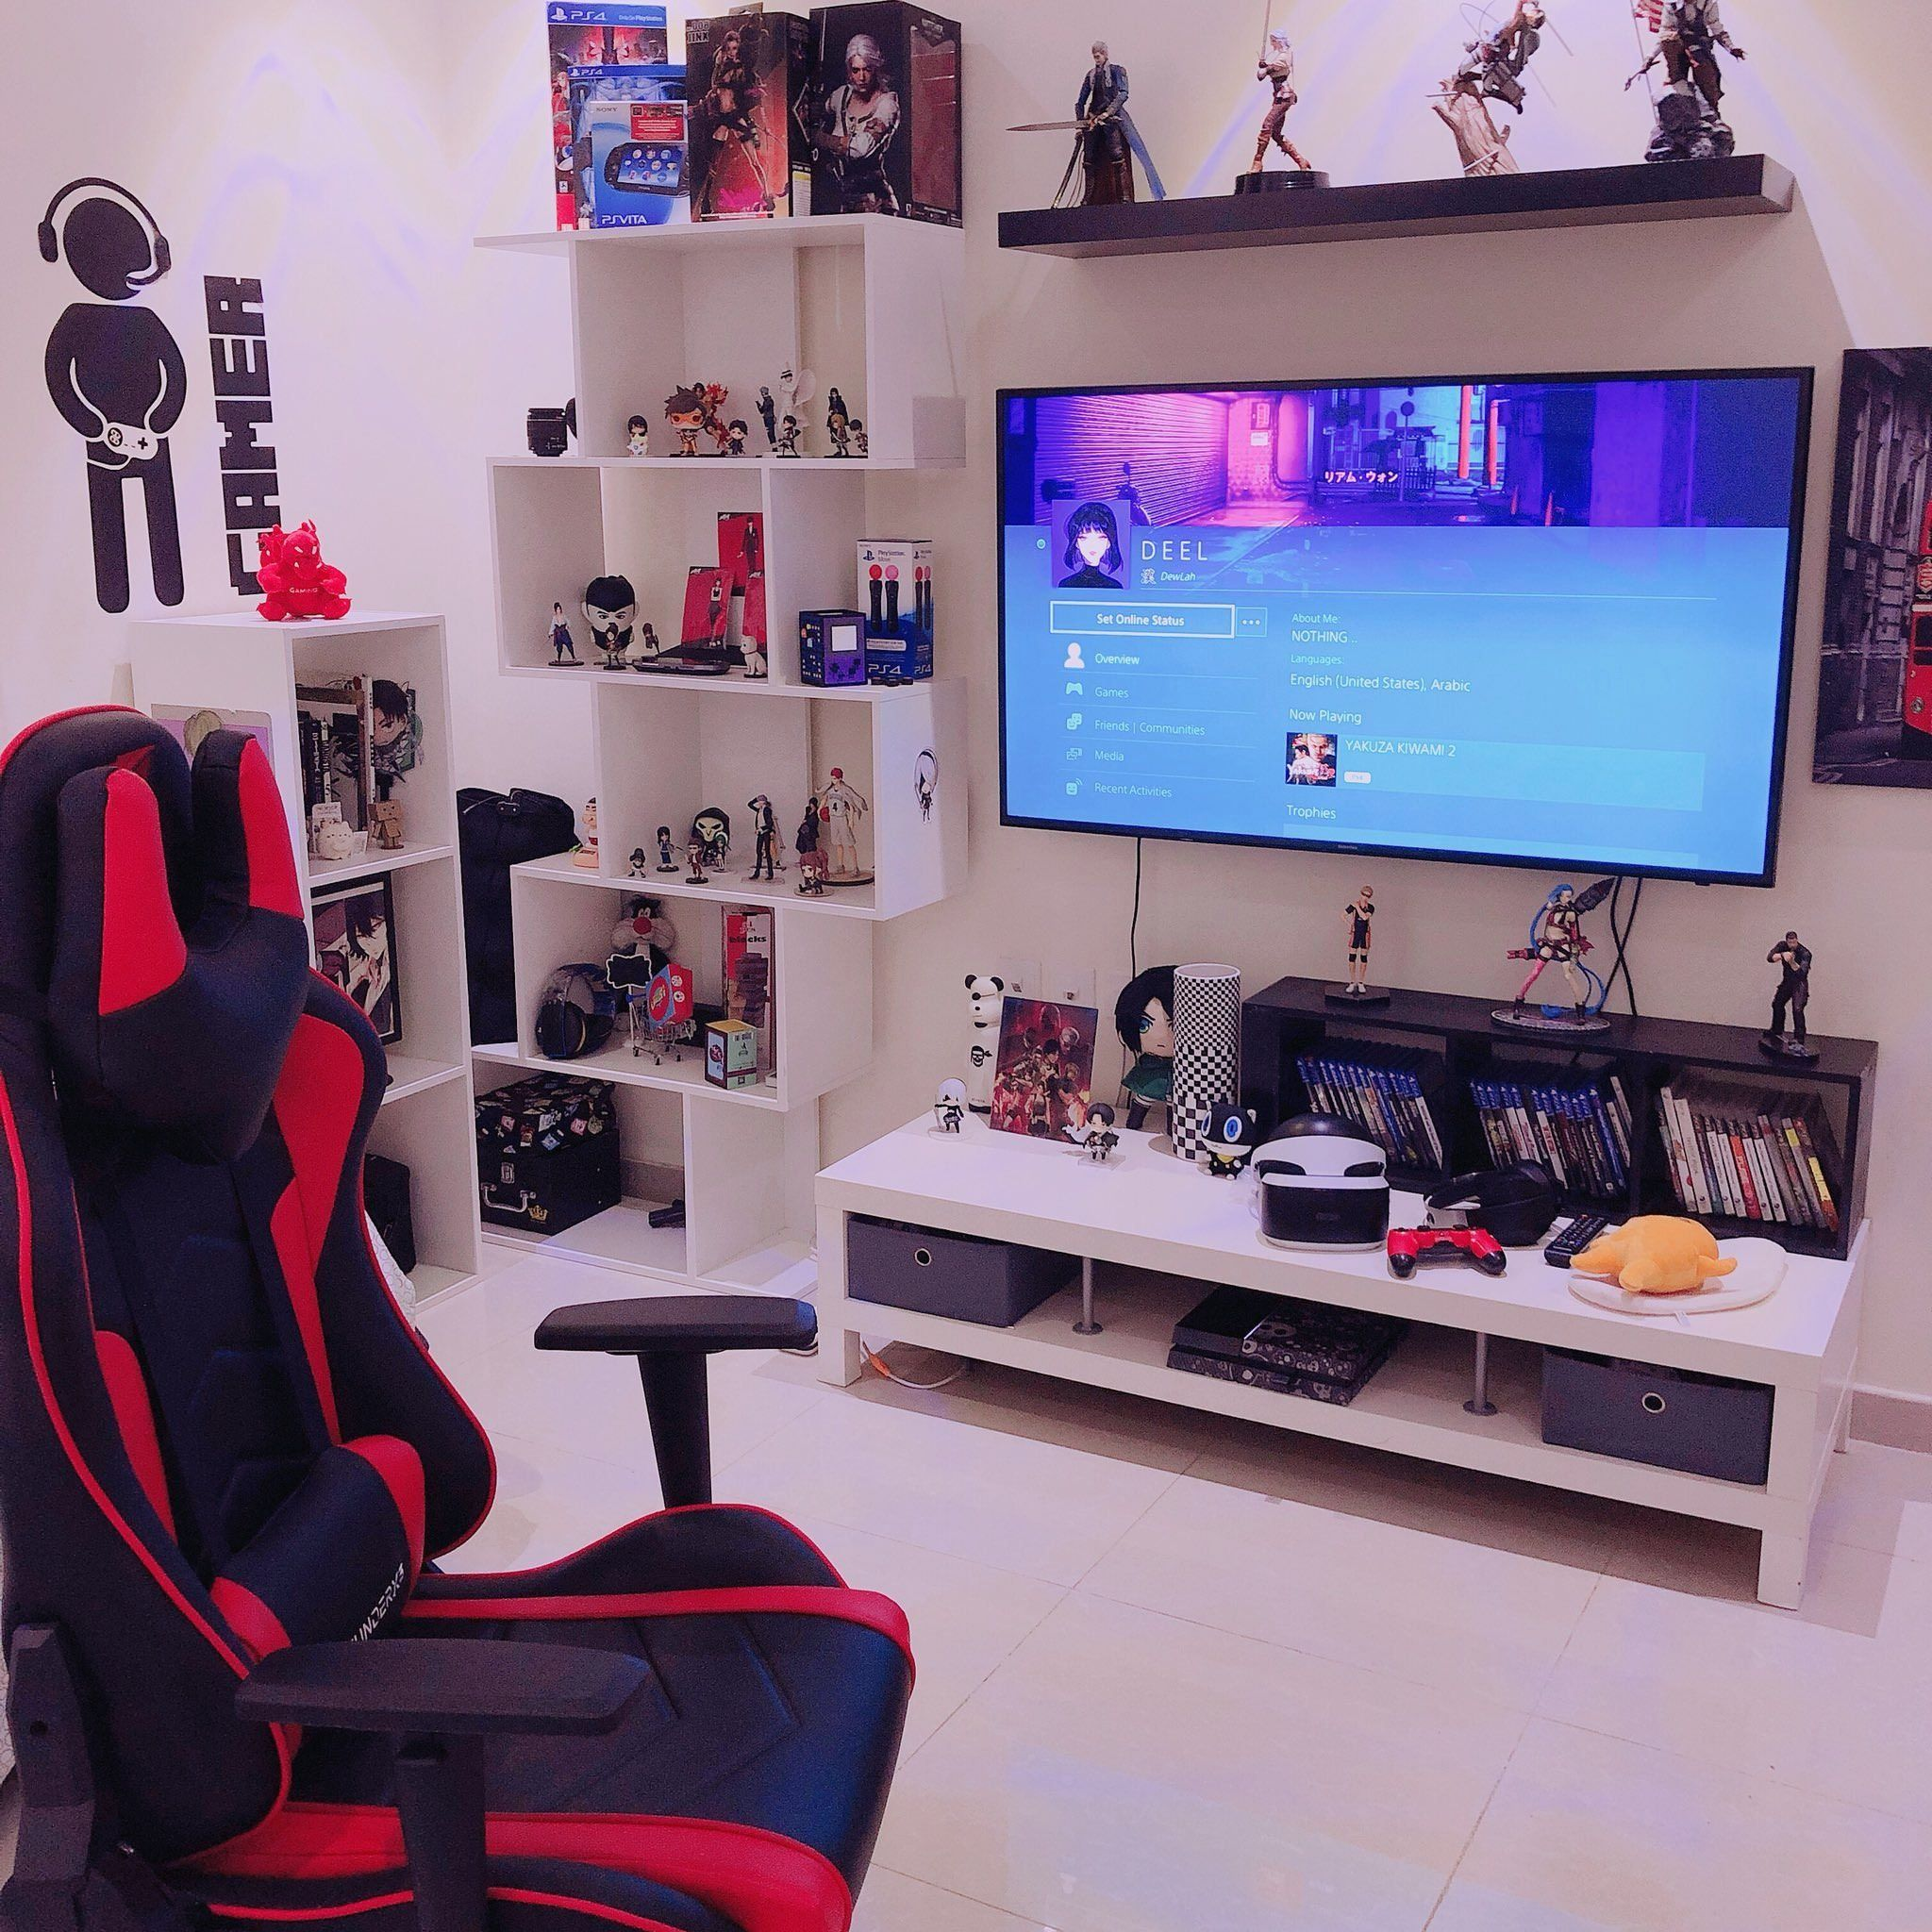 Home house & components rooms bedroom every editoria. | 1000 | Small game rooms, Playstation room, Game room decor